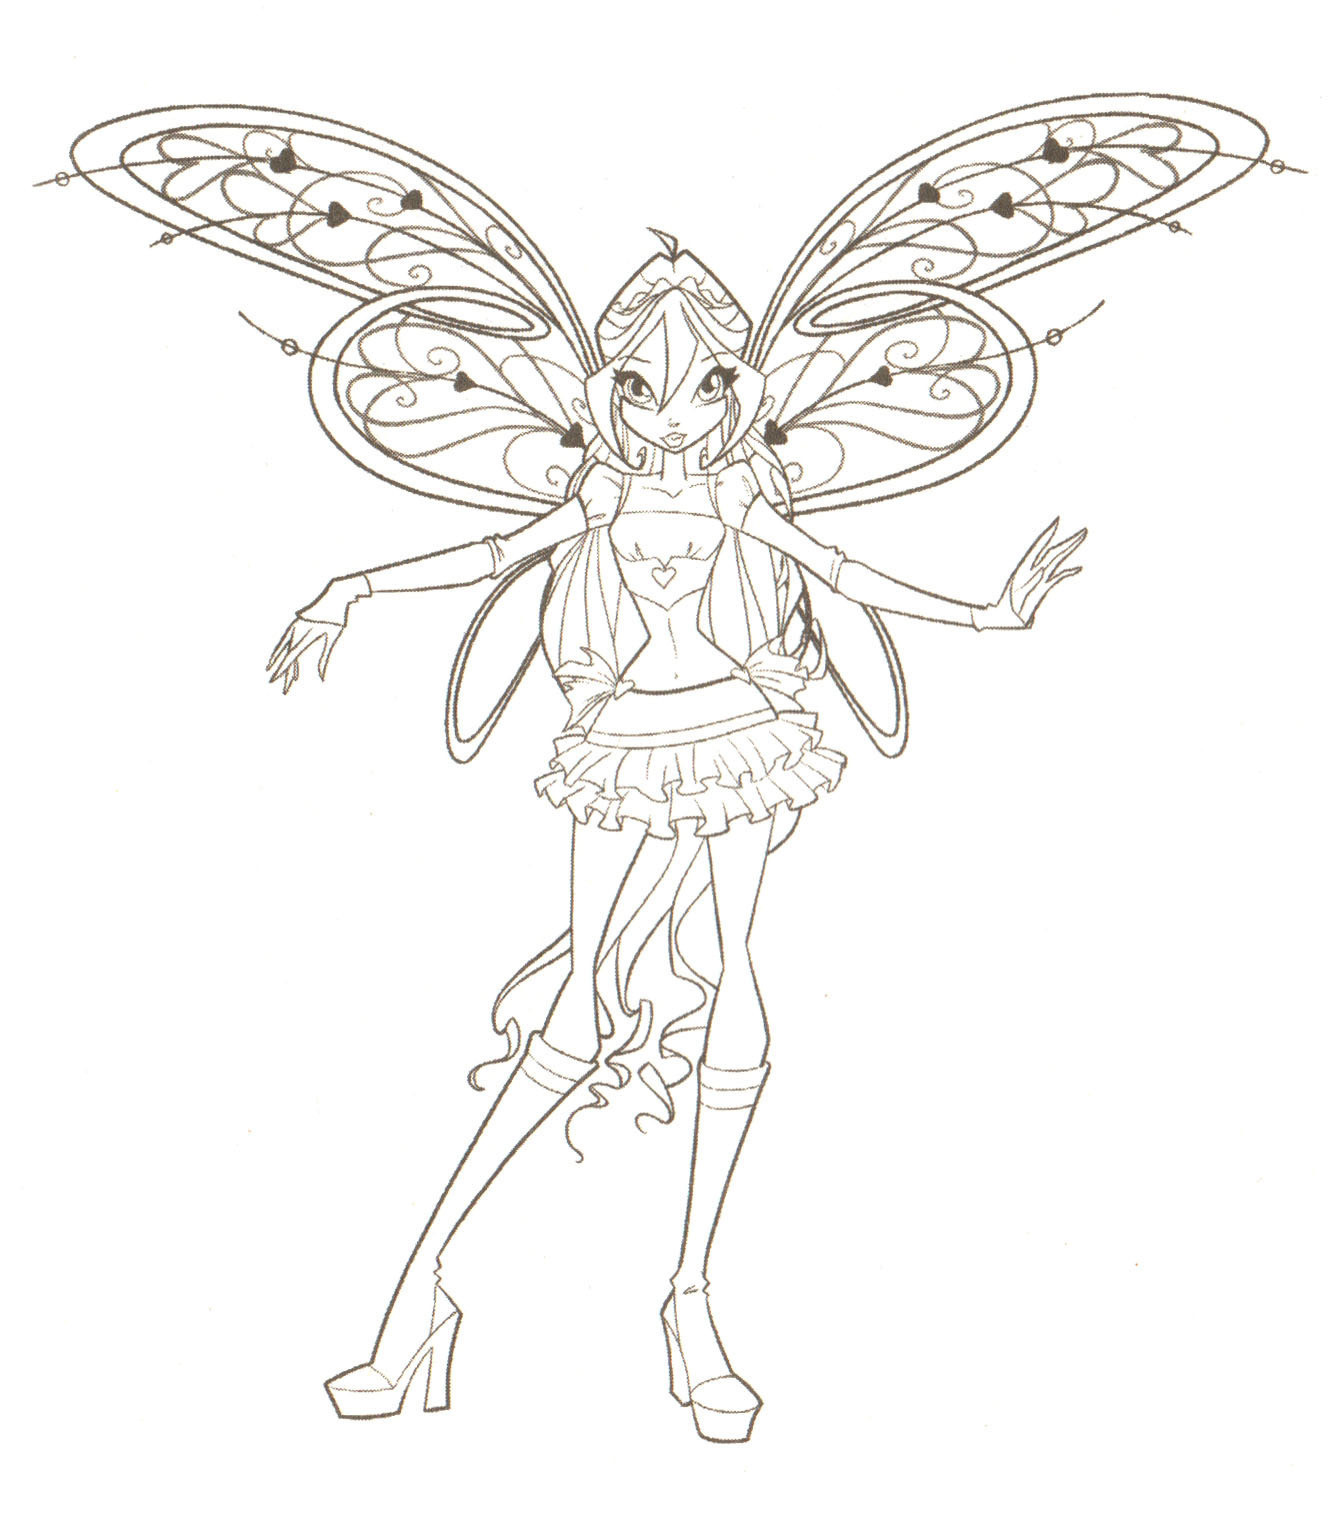 Winx Club Ausmalbilder Inspirierend Winxclub Winx Club Coloring Pages Hd Wallpaper and Frisch Stock